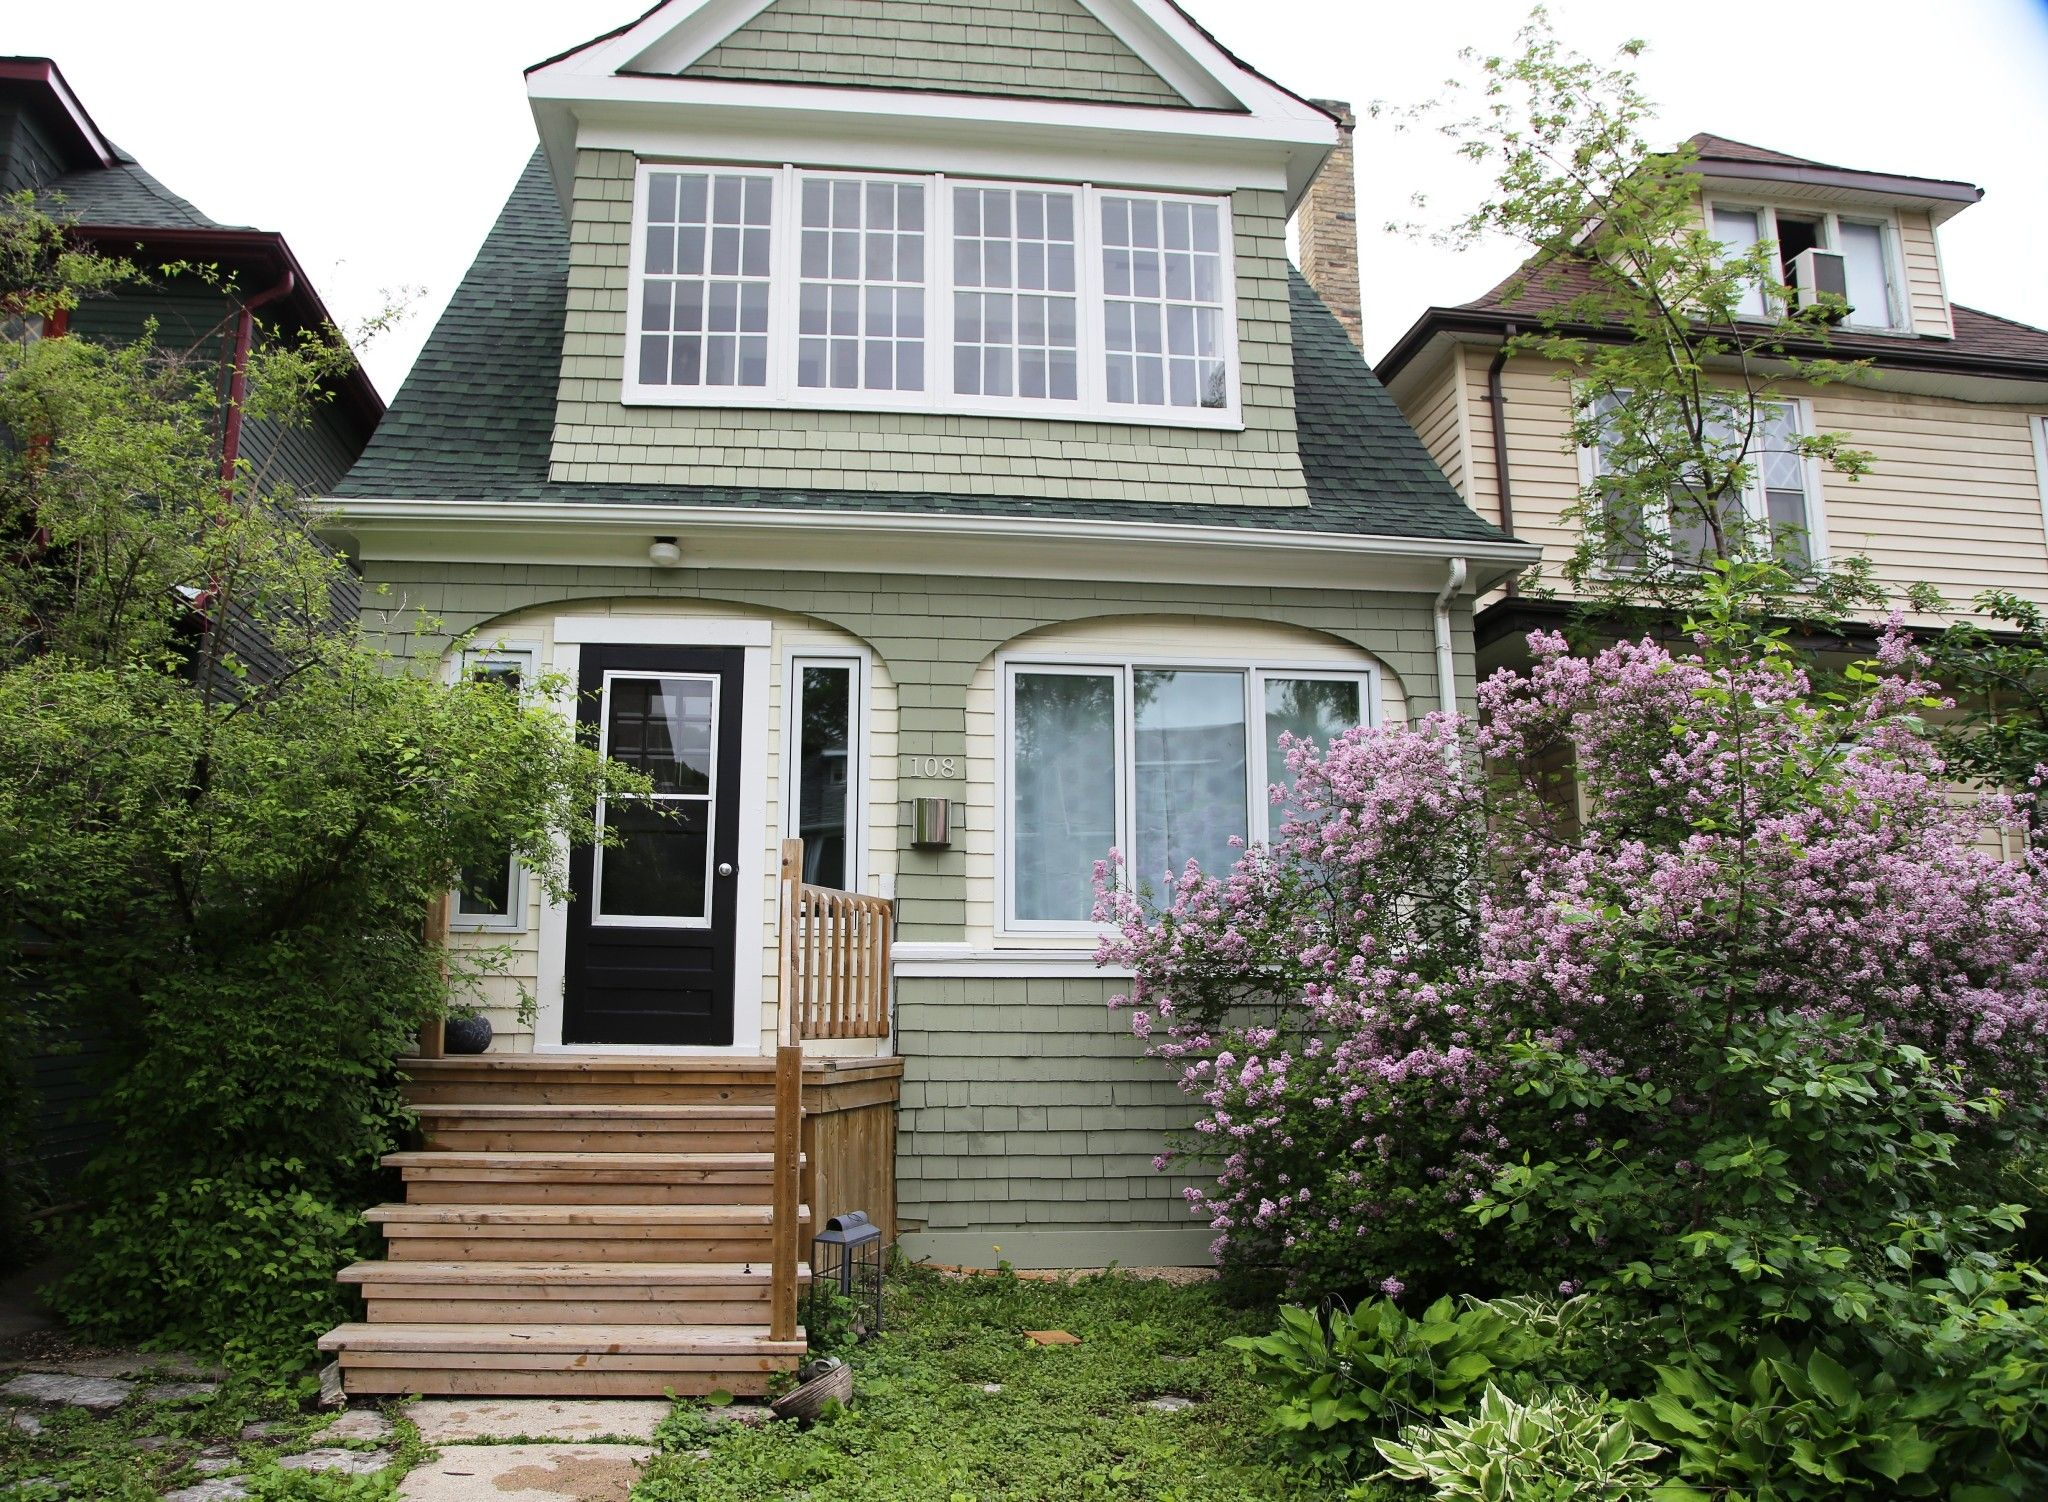 Welcome to 108 Lenore St. in Wolseley!